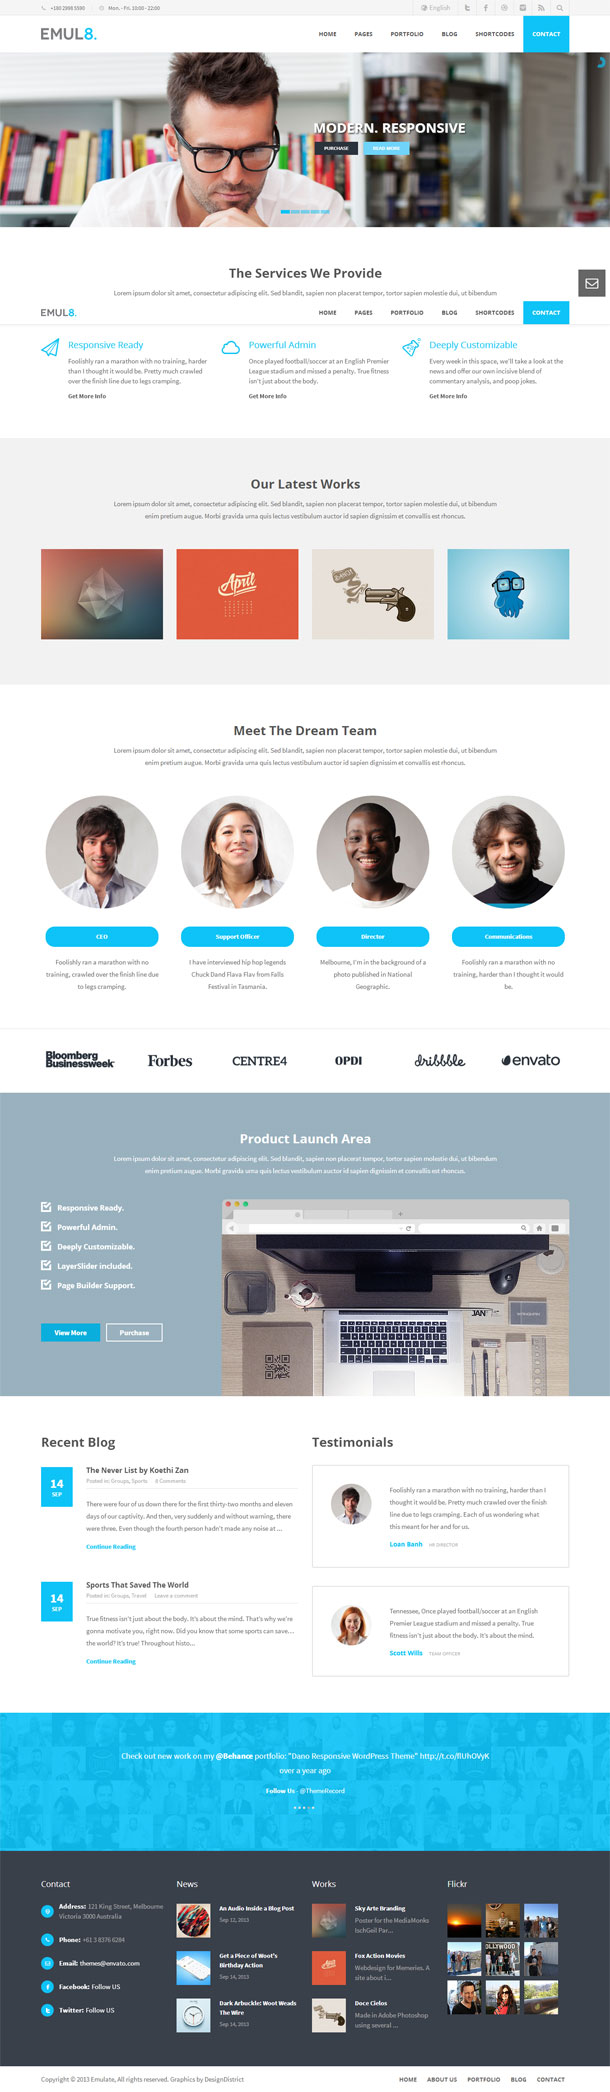 Emulate Best WP Construction Company Theme Image